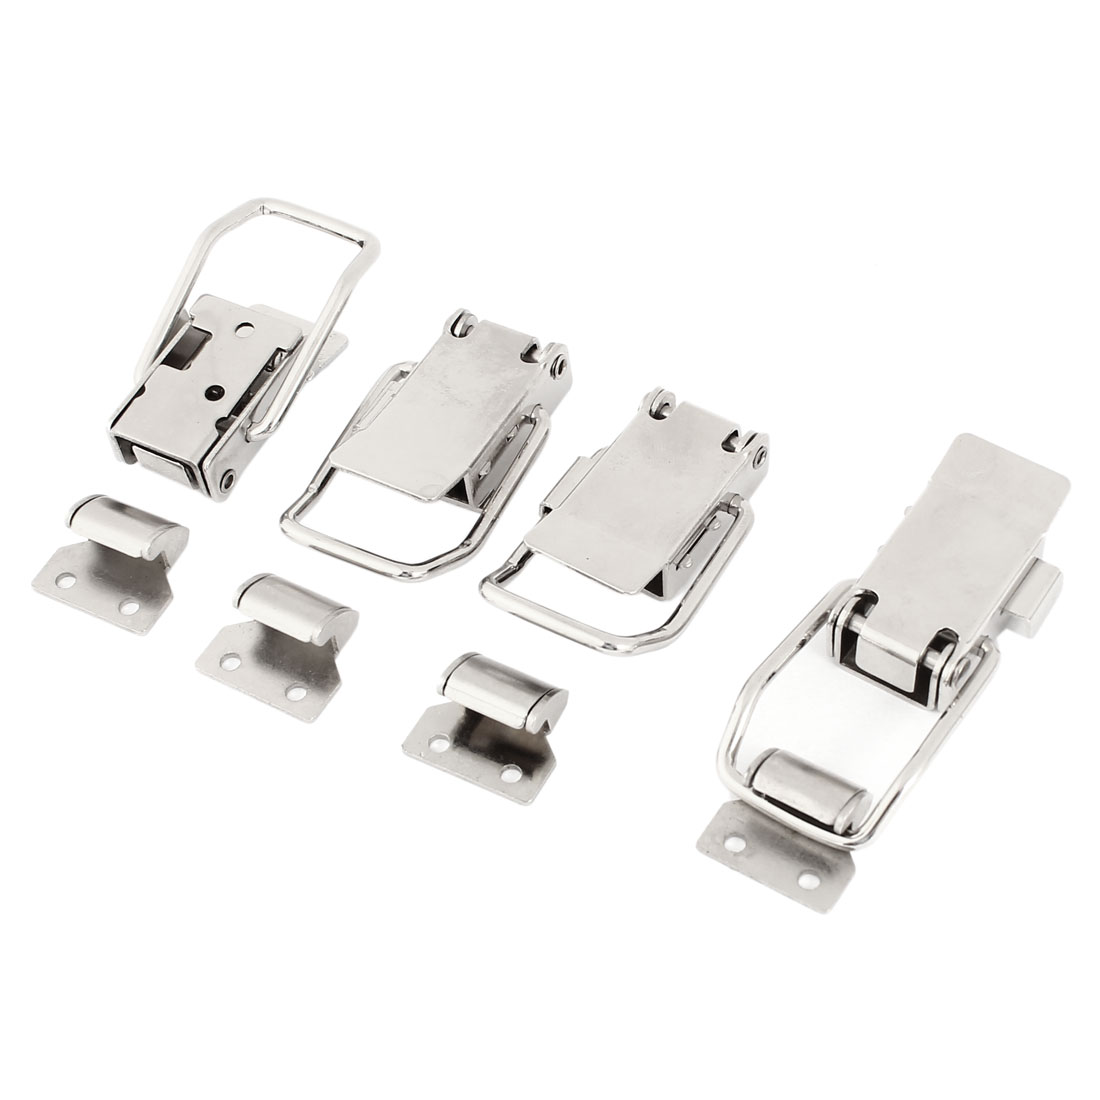 Push Open Design Spring Loaded Silver Tone Lock Toggle Latch 4 Sets